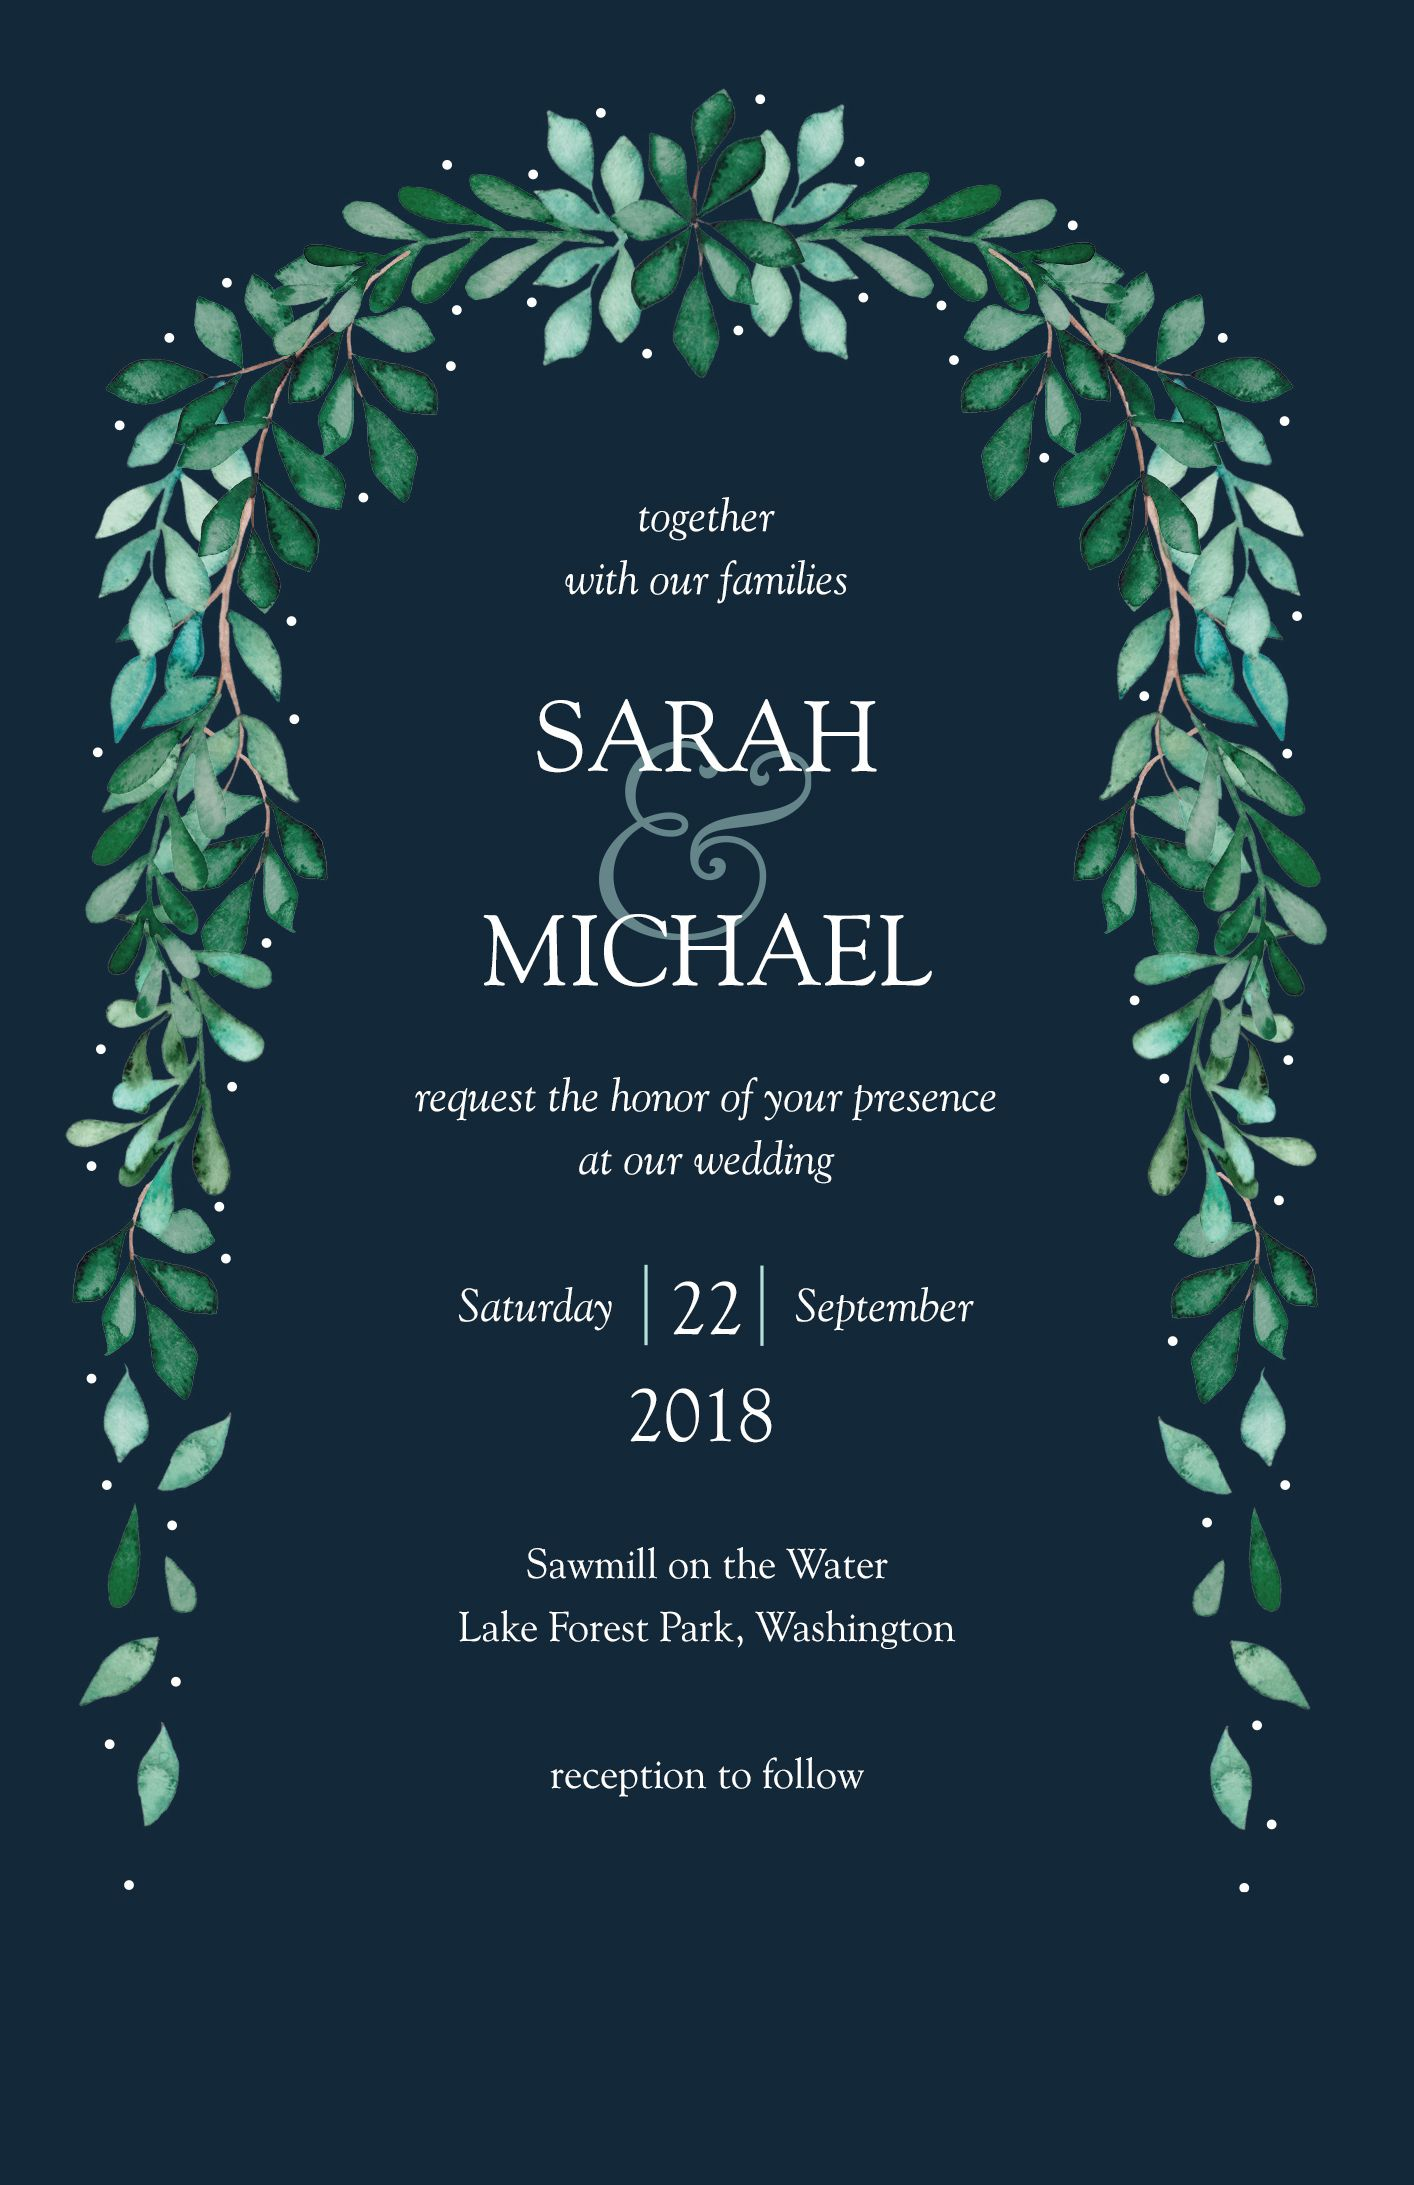 Wedding Invitations Vistaprint.Arch Of Greenery Invitation Weddings By Vistaprint